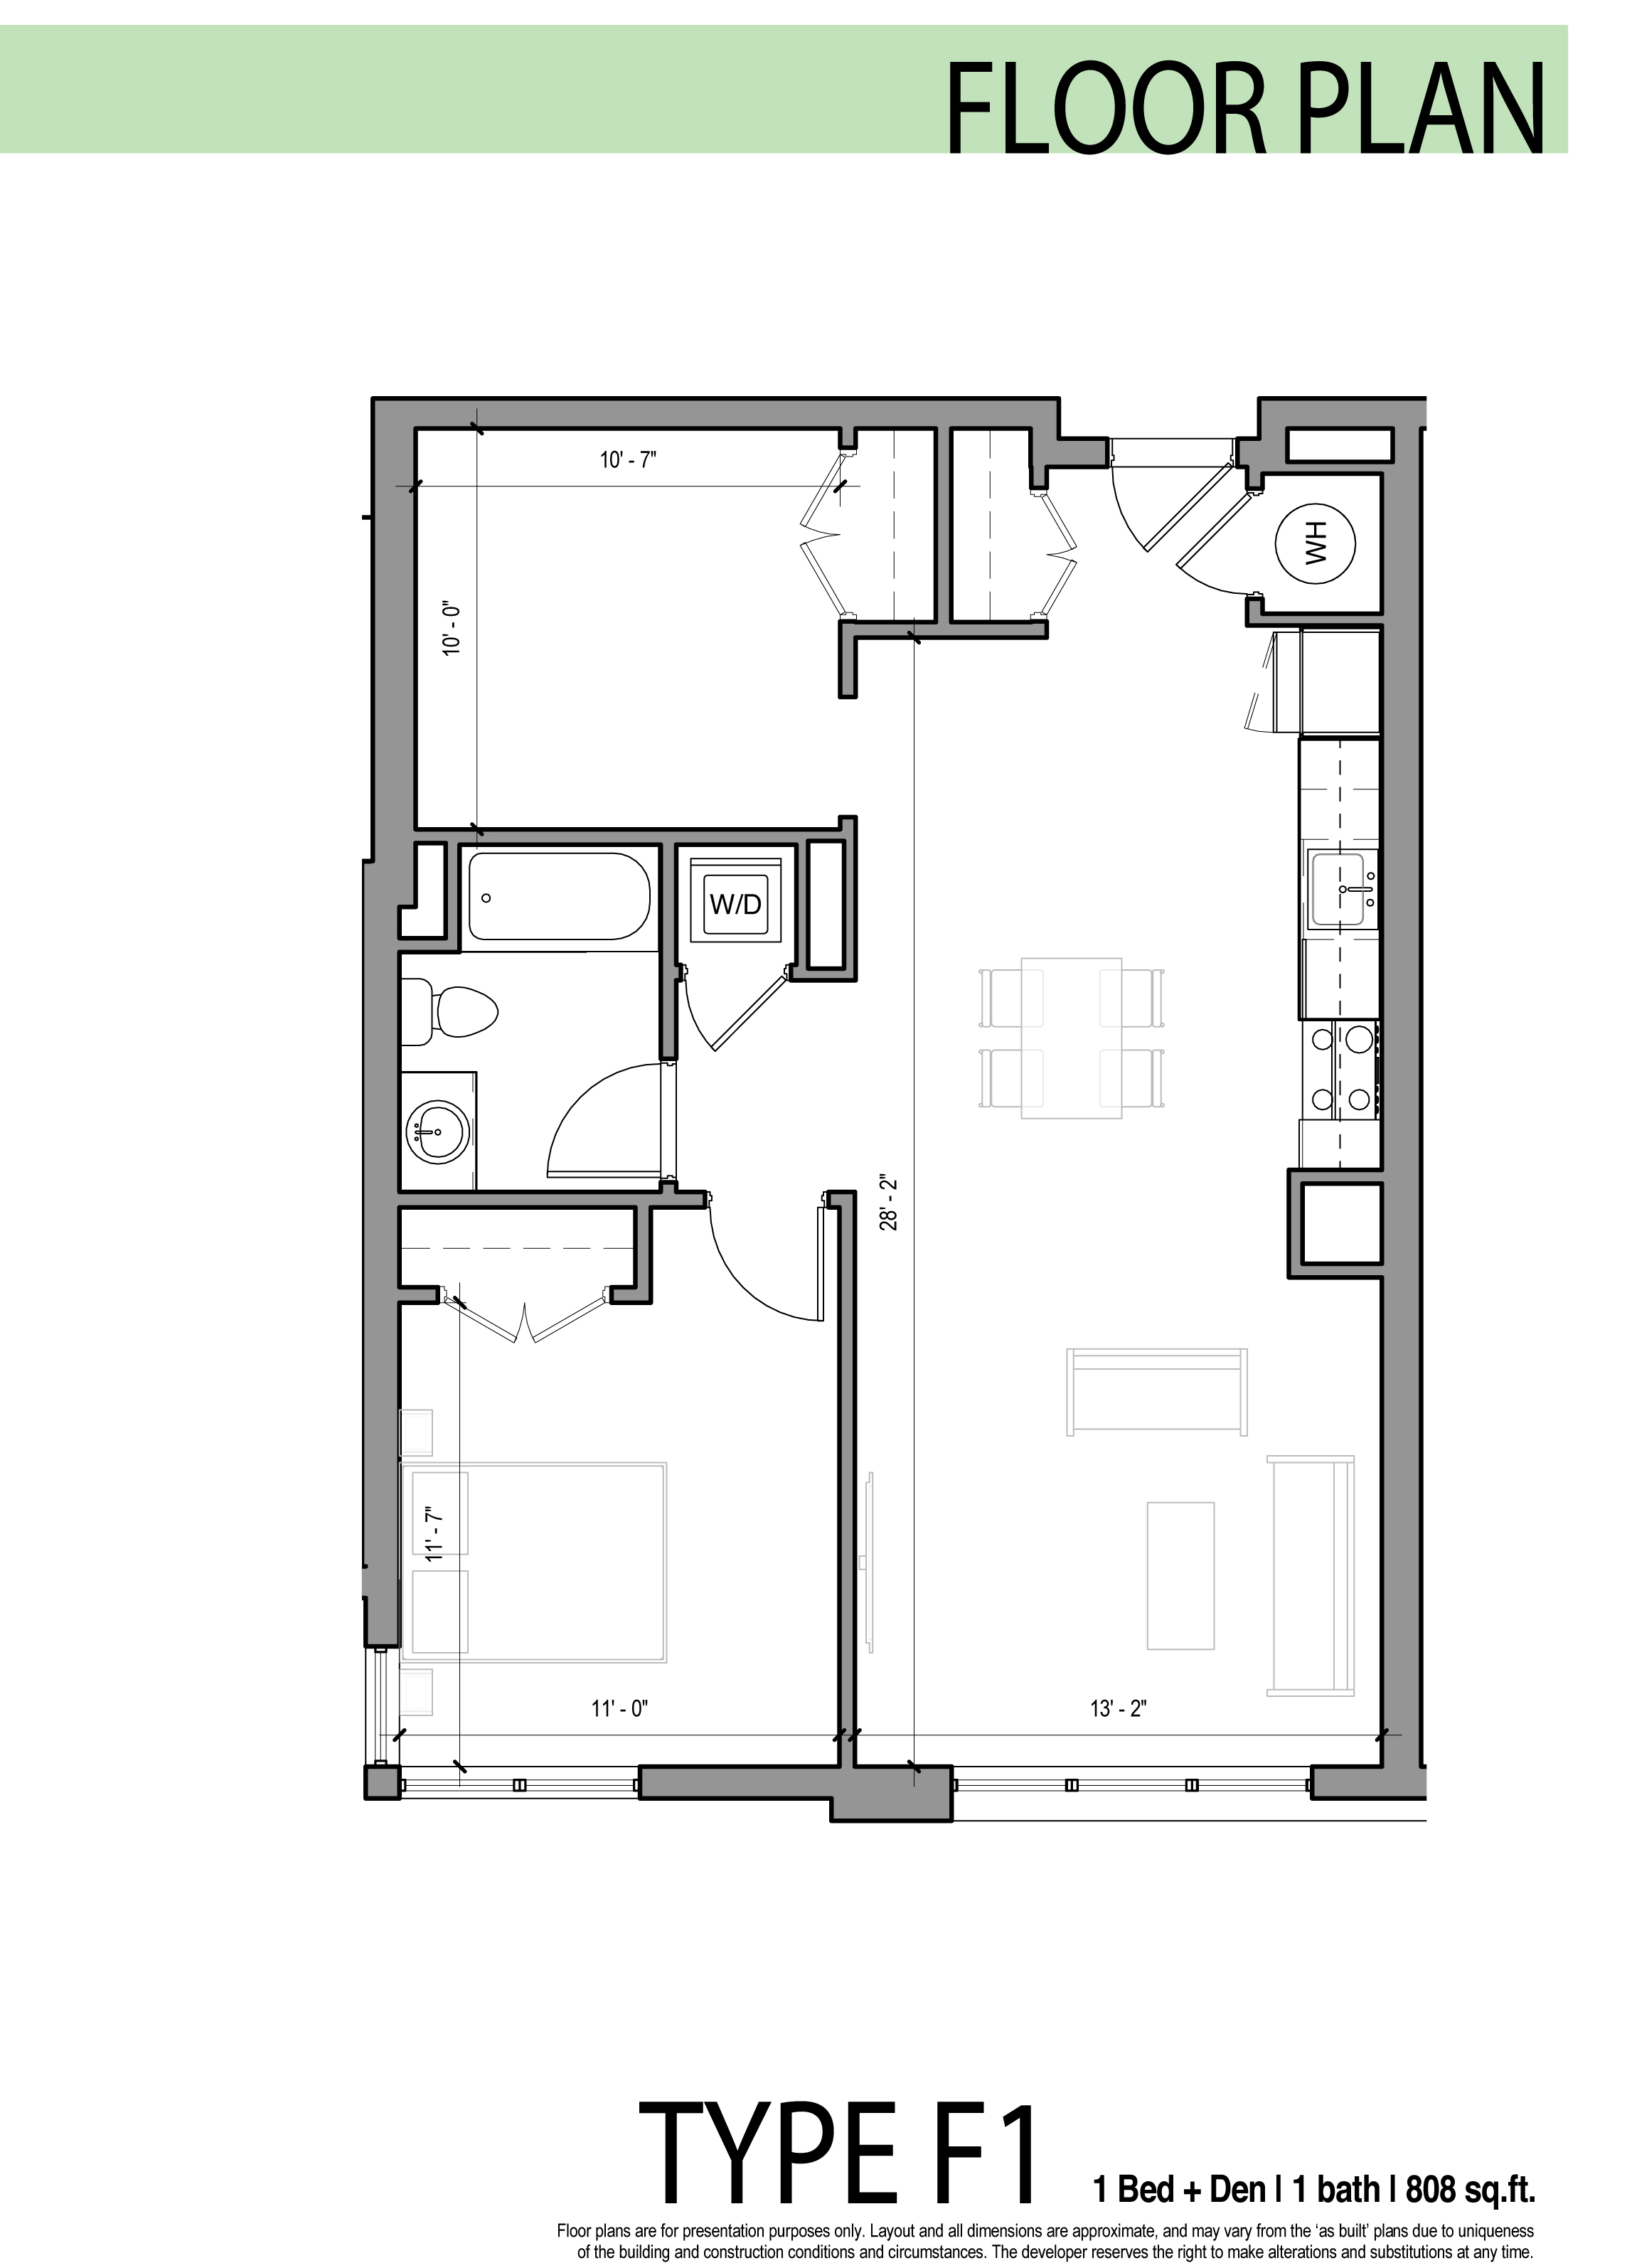 Edge allston floor plans for Bedroom planner